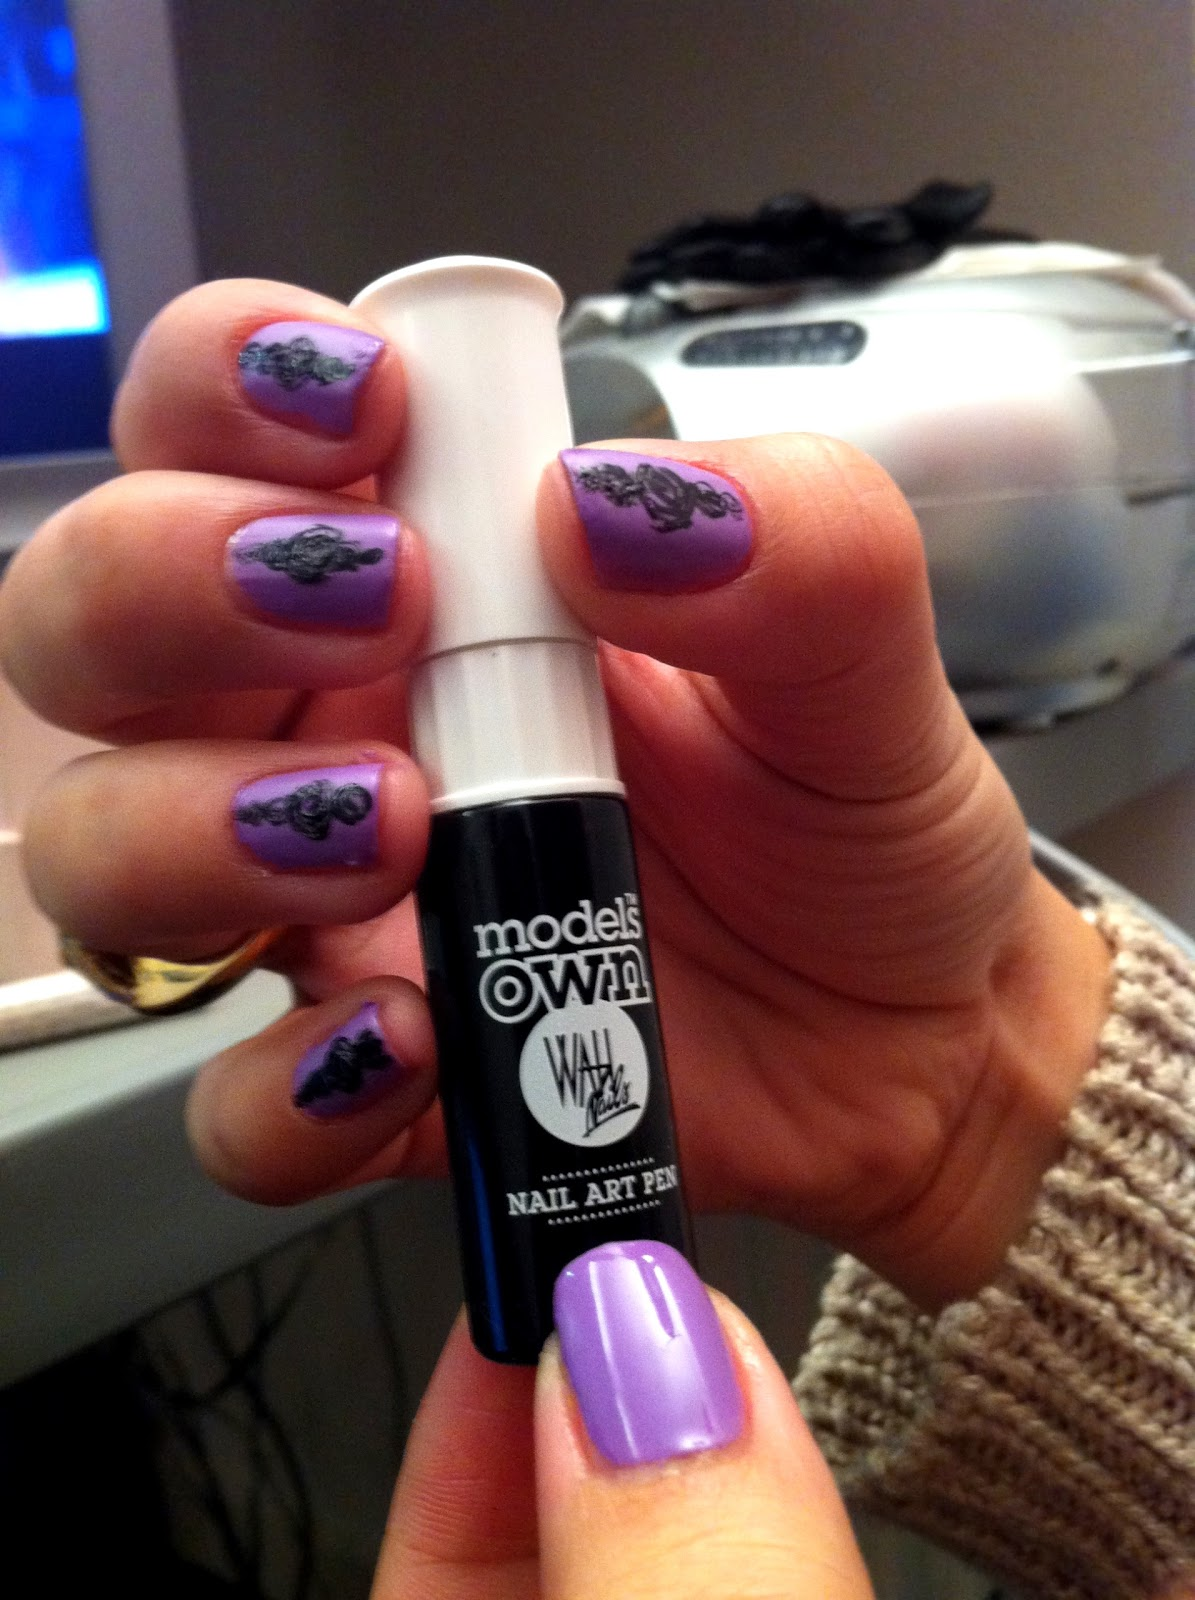 kirst and the fashion crowd review model 39 s own nail art pen. Black Bedroom Furniture Sets. Home Design Ideas